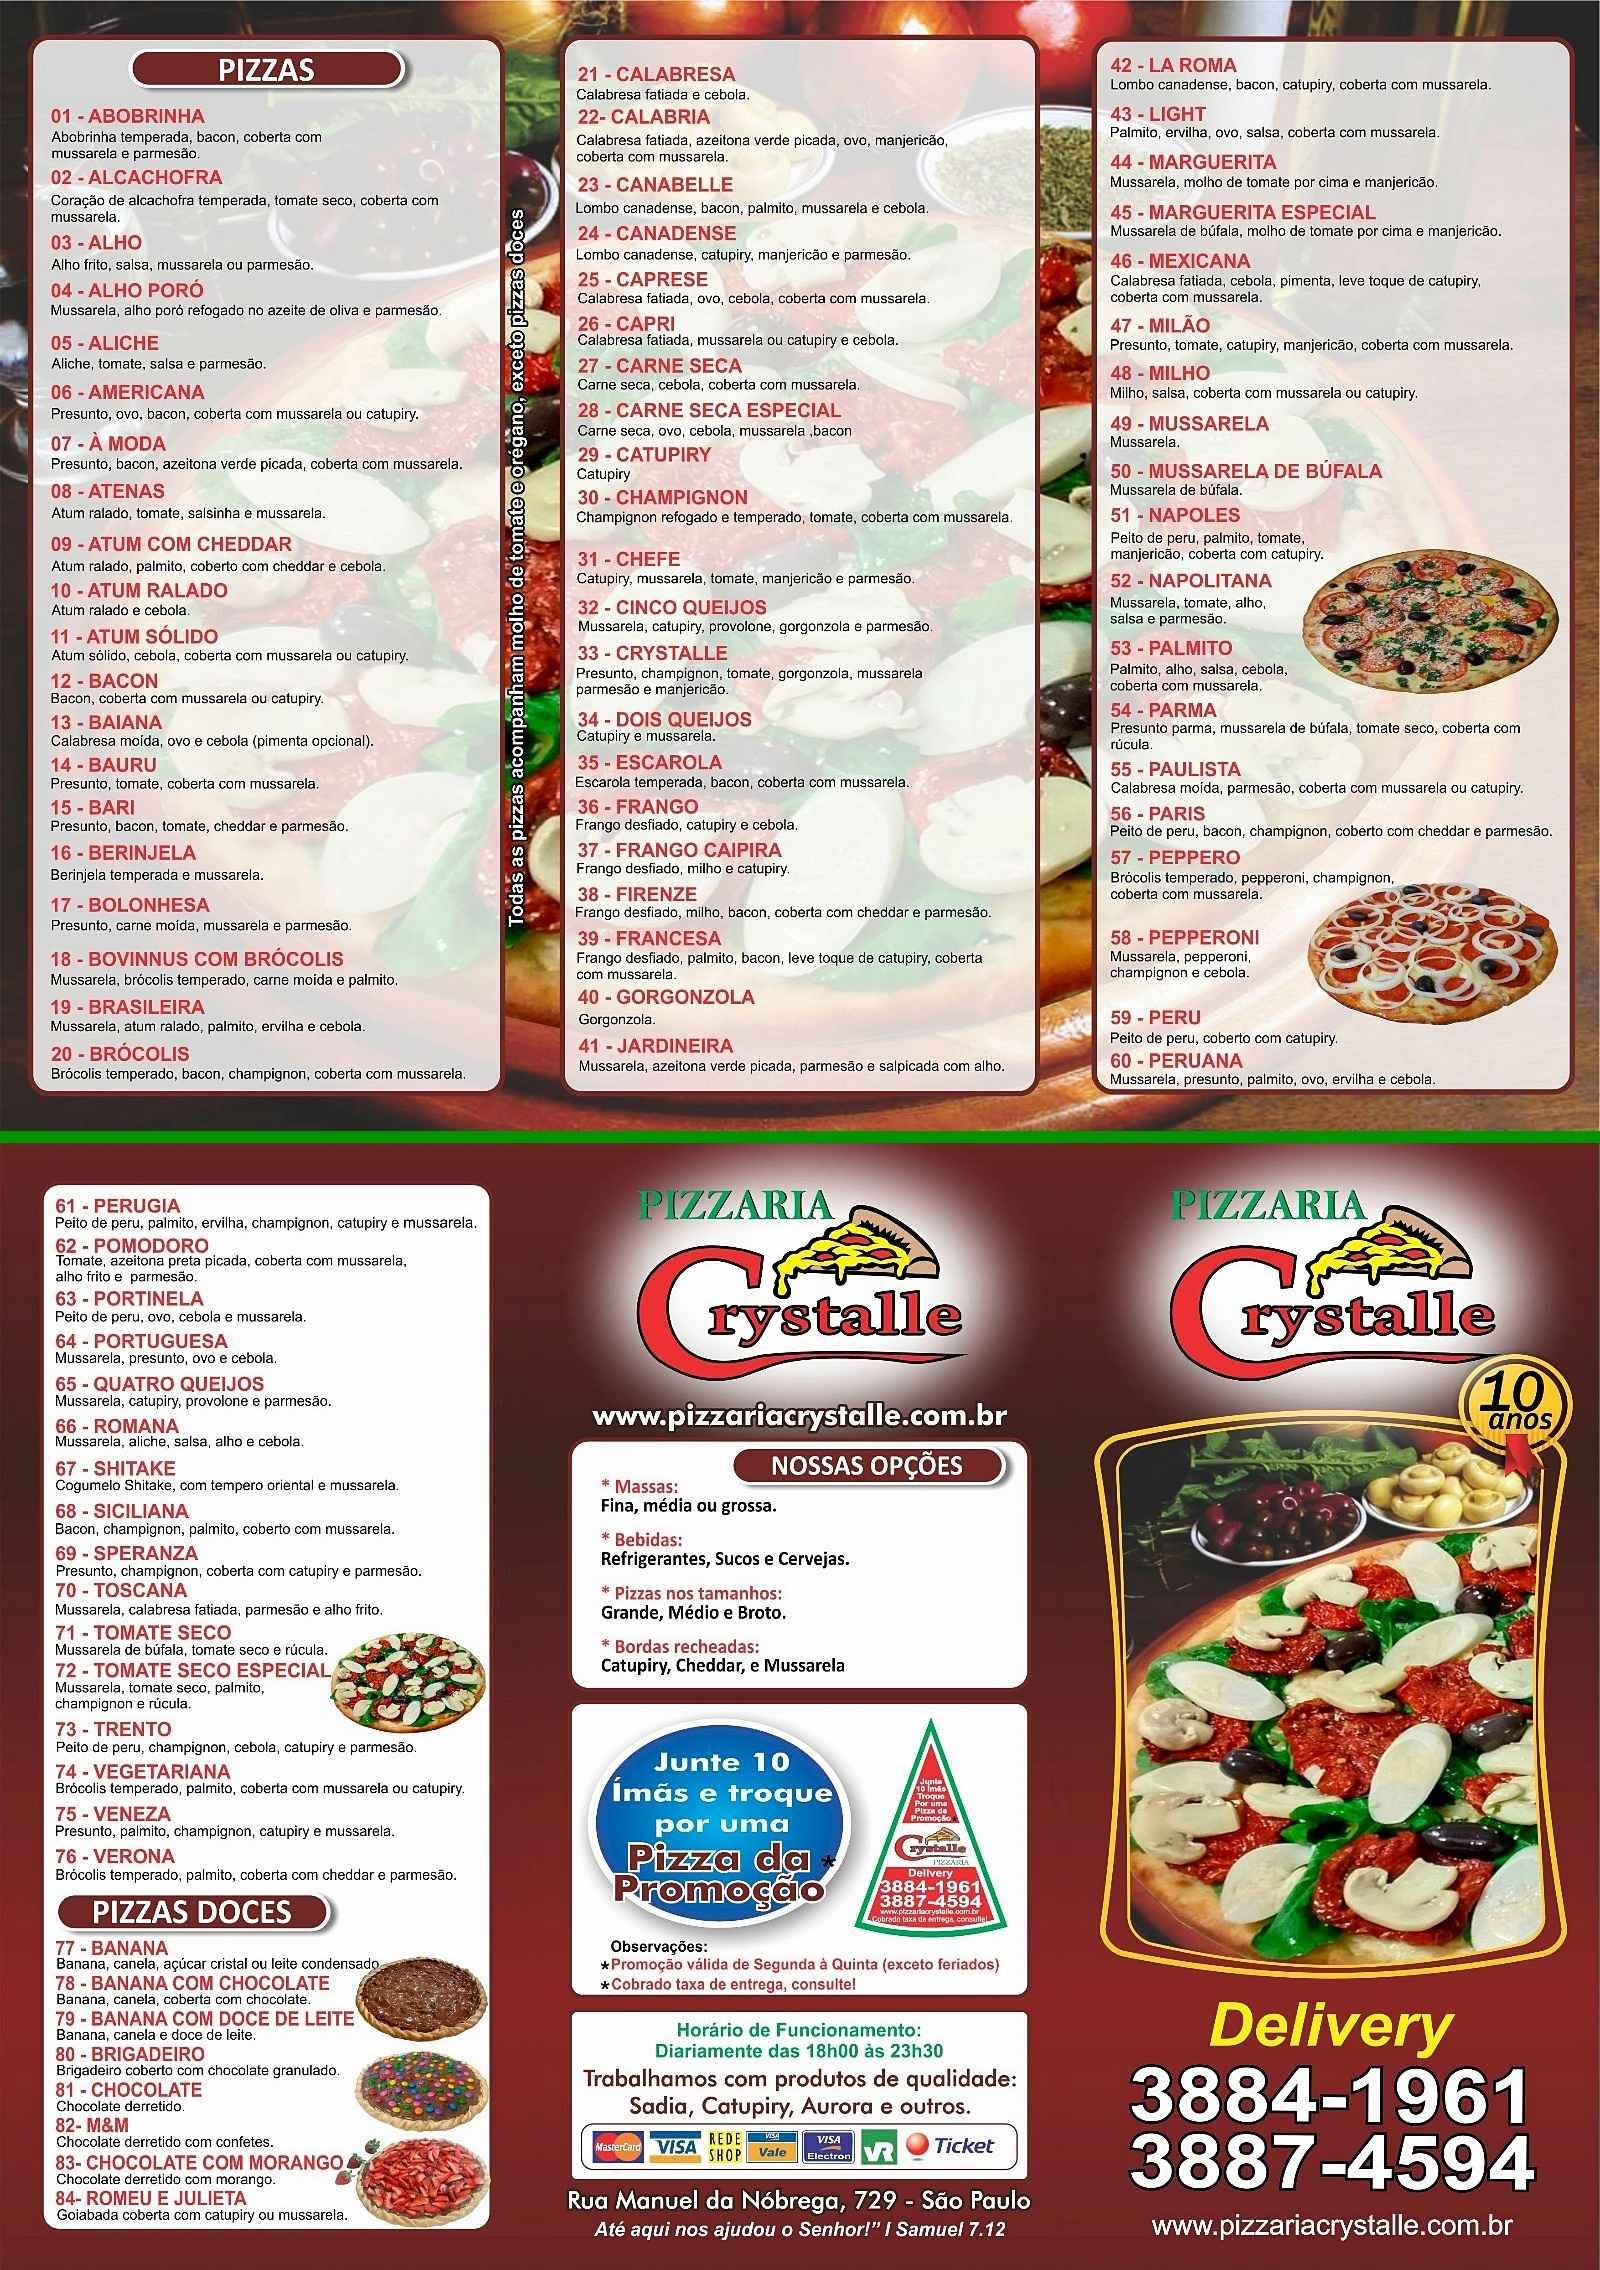 Crystalle Pizzaria